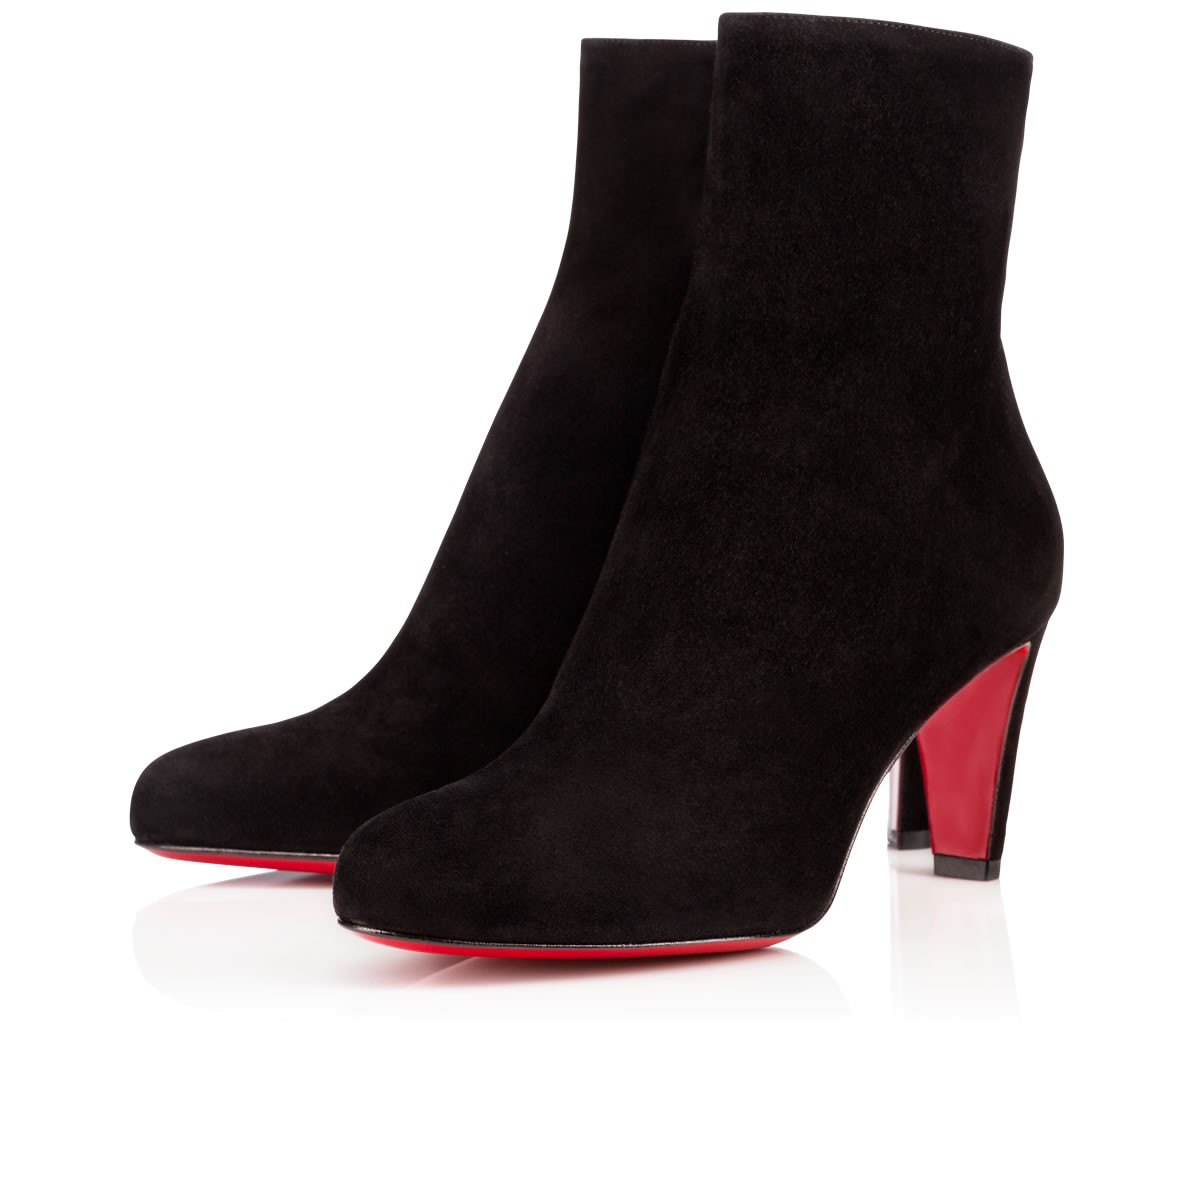 Christian Louboutin Tiagadaboot Suede 70Mm Red Sole Bootie, Black, Cognac